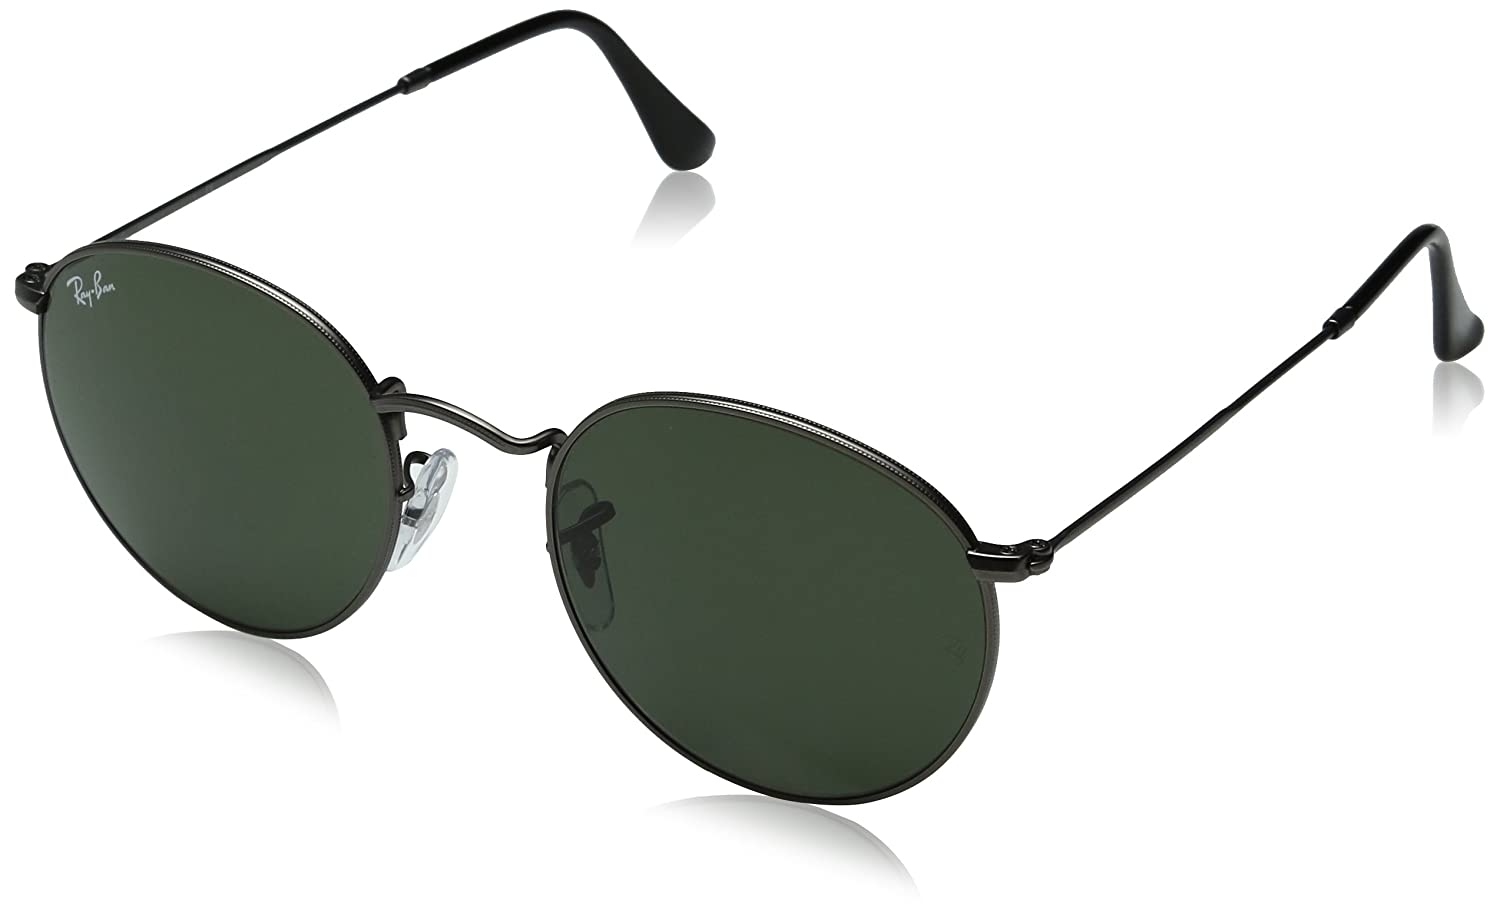 Ray Ban Round Sunglasses Gunmetal Green